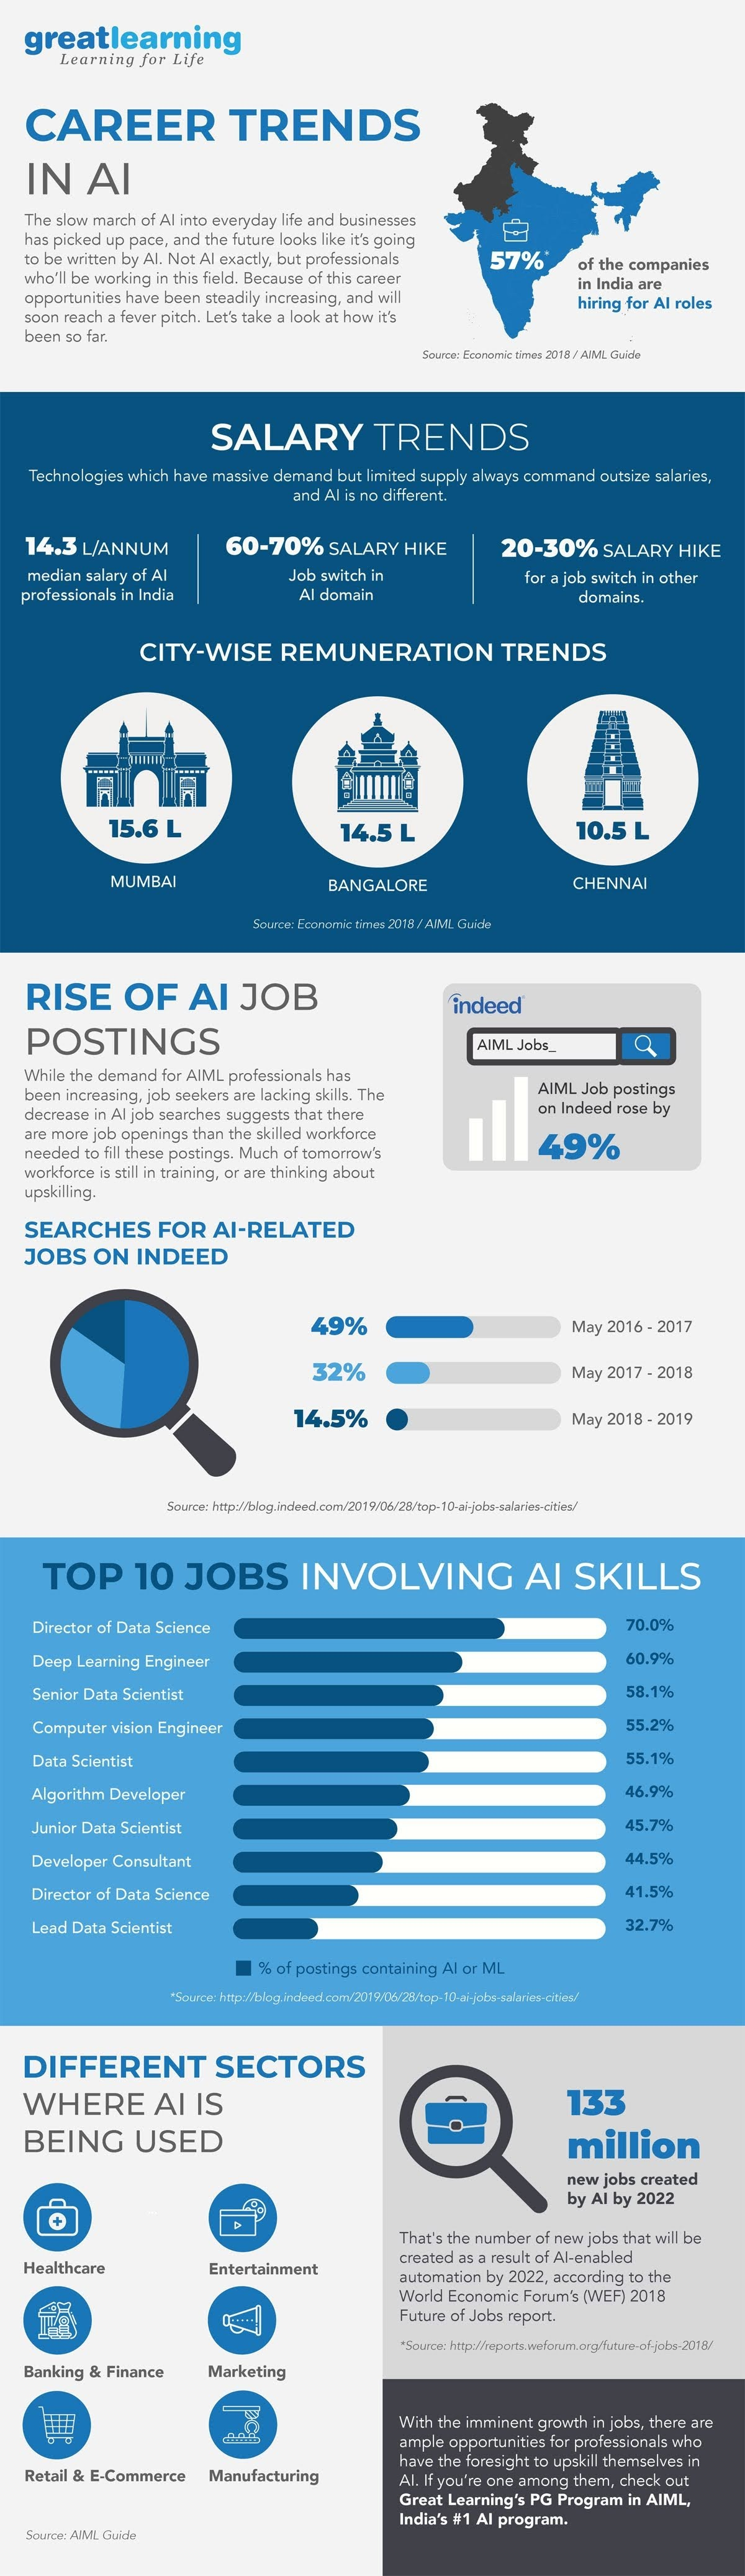 Career Trends in AI #infographic